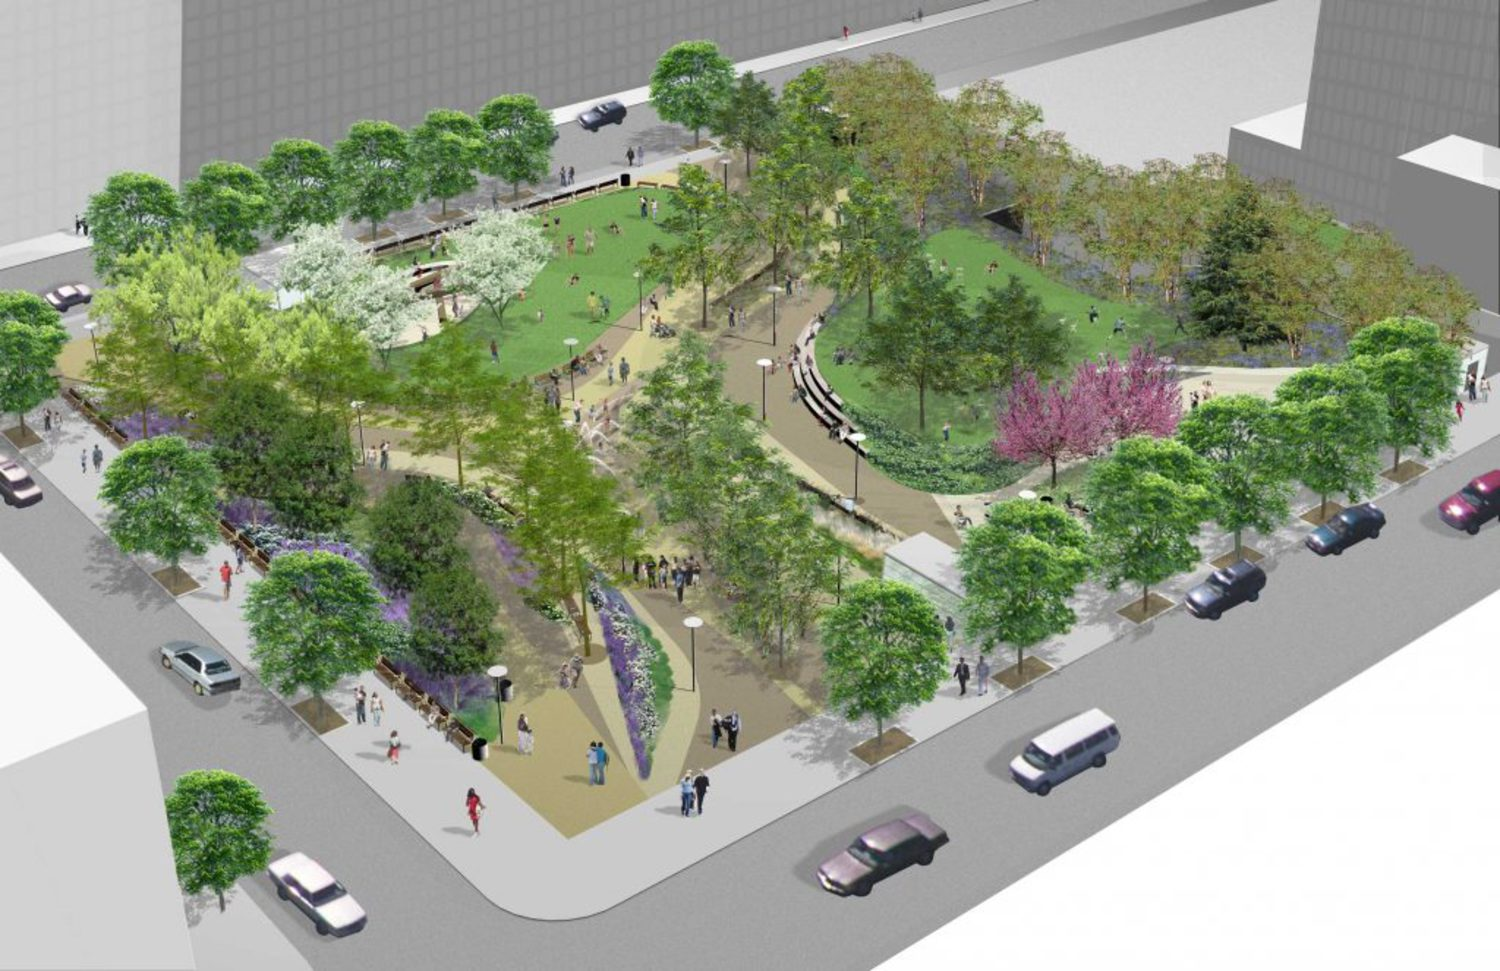 A rendering of Willoughby Square, the park that will replace 217 Duffield Street.